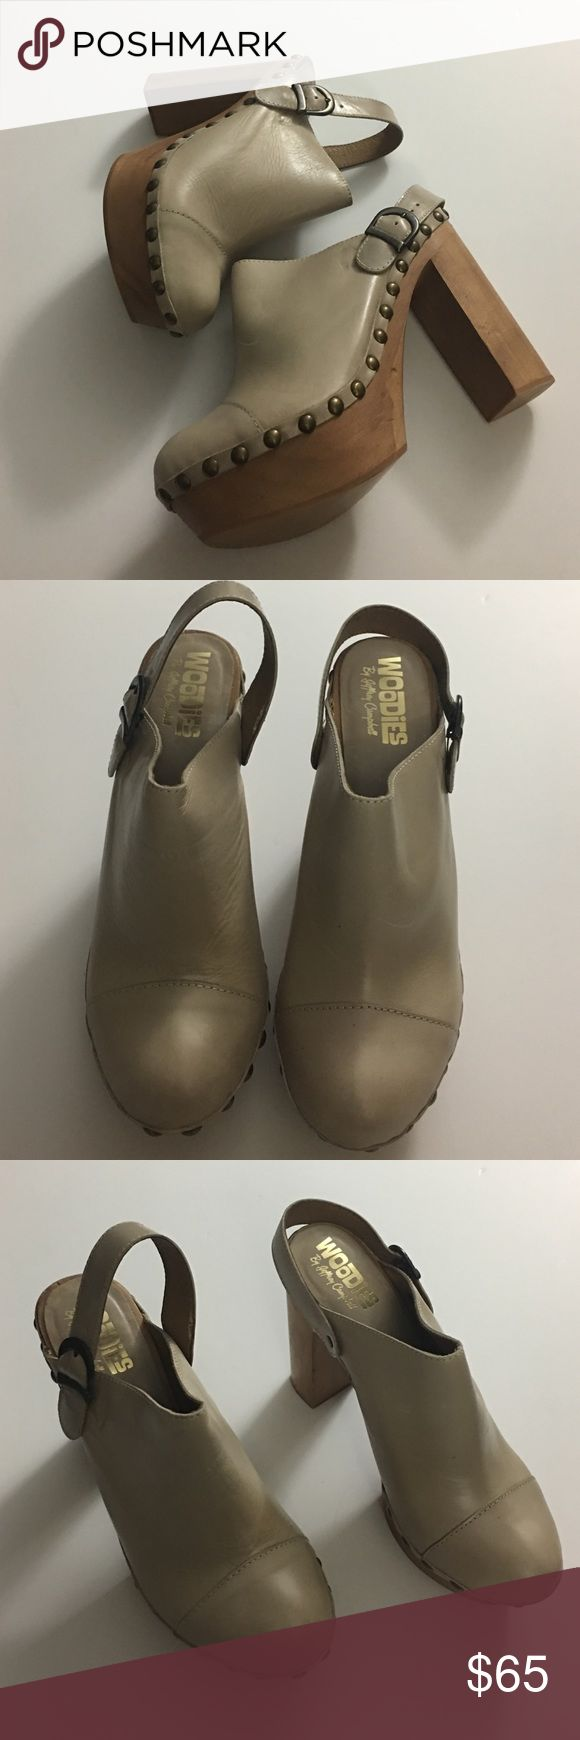 Woodies By Jeffrey Campbell Beautiful clogs by Jeffrey Campbell shoes made in Spain. Beautiful bone color they have not been worn just tried on. Leather upper. No obvious imperfections. Jeffrey Campbell Shoes Mules & Clogs